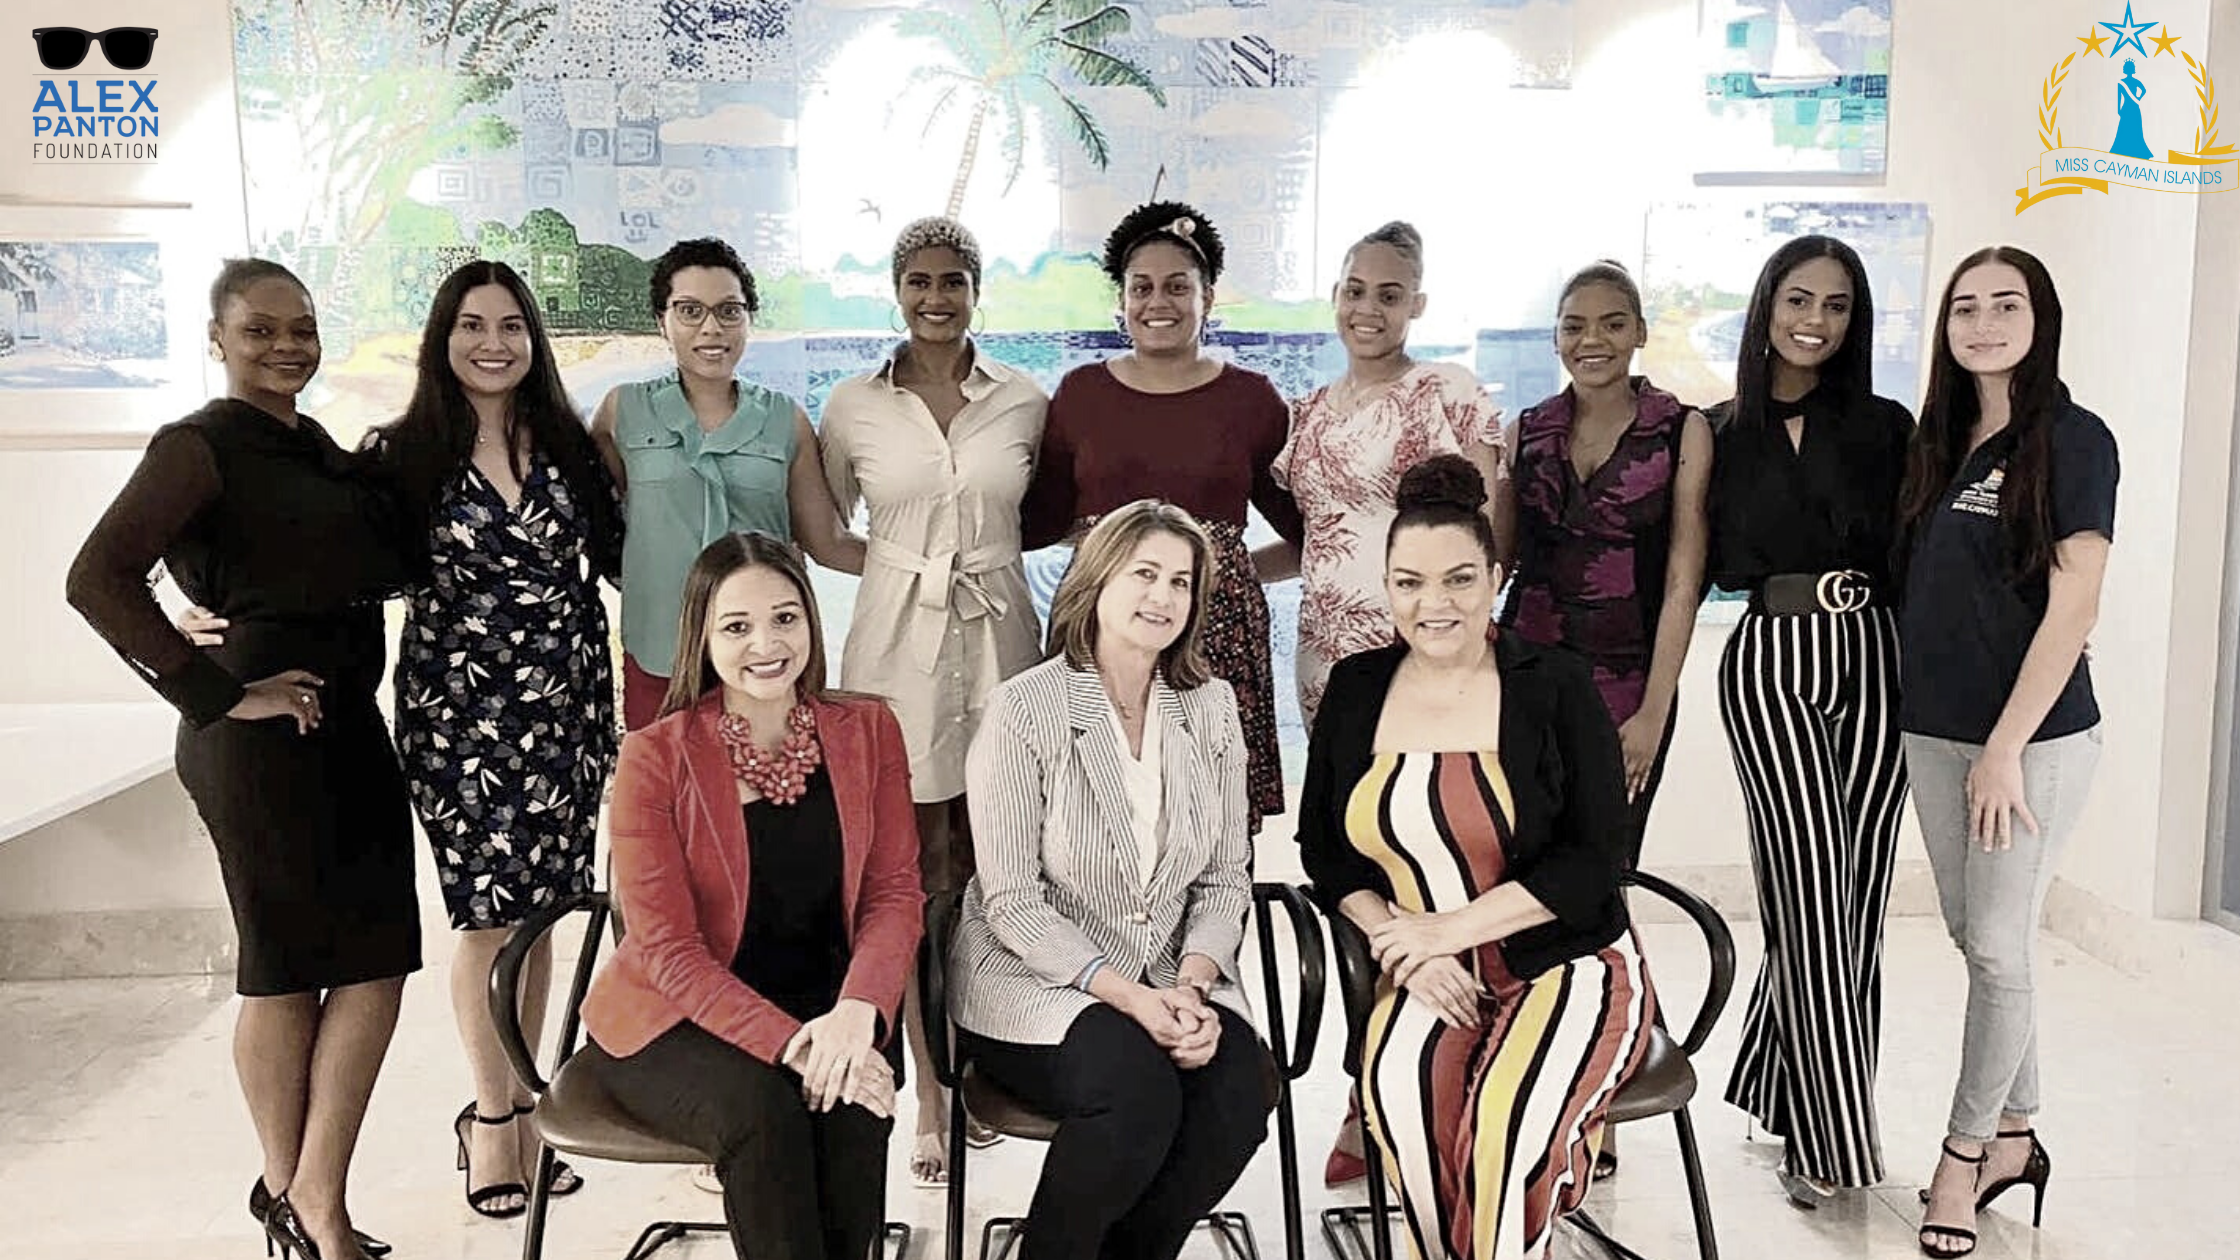 Miss Cayman Islands Universe Selects APF as their 2021 Platform!